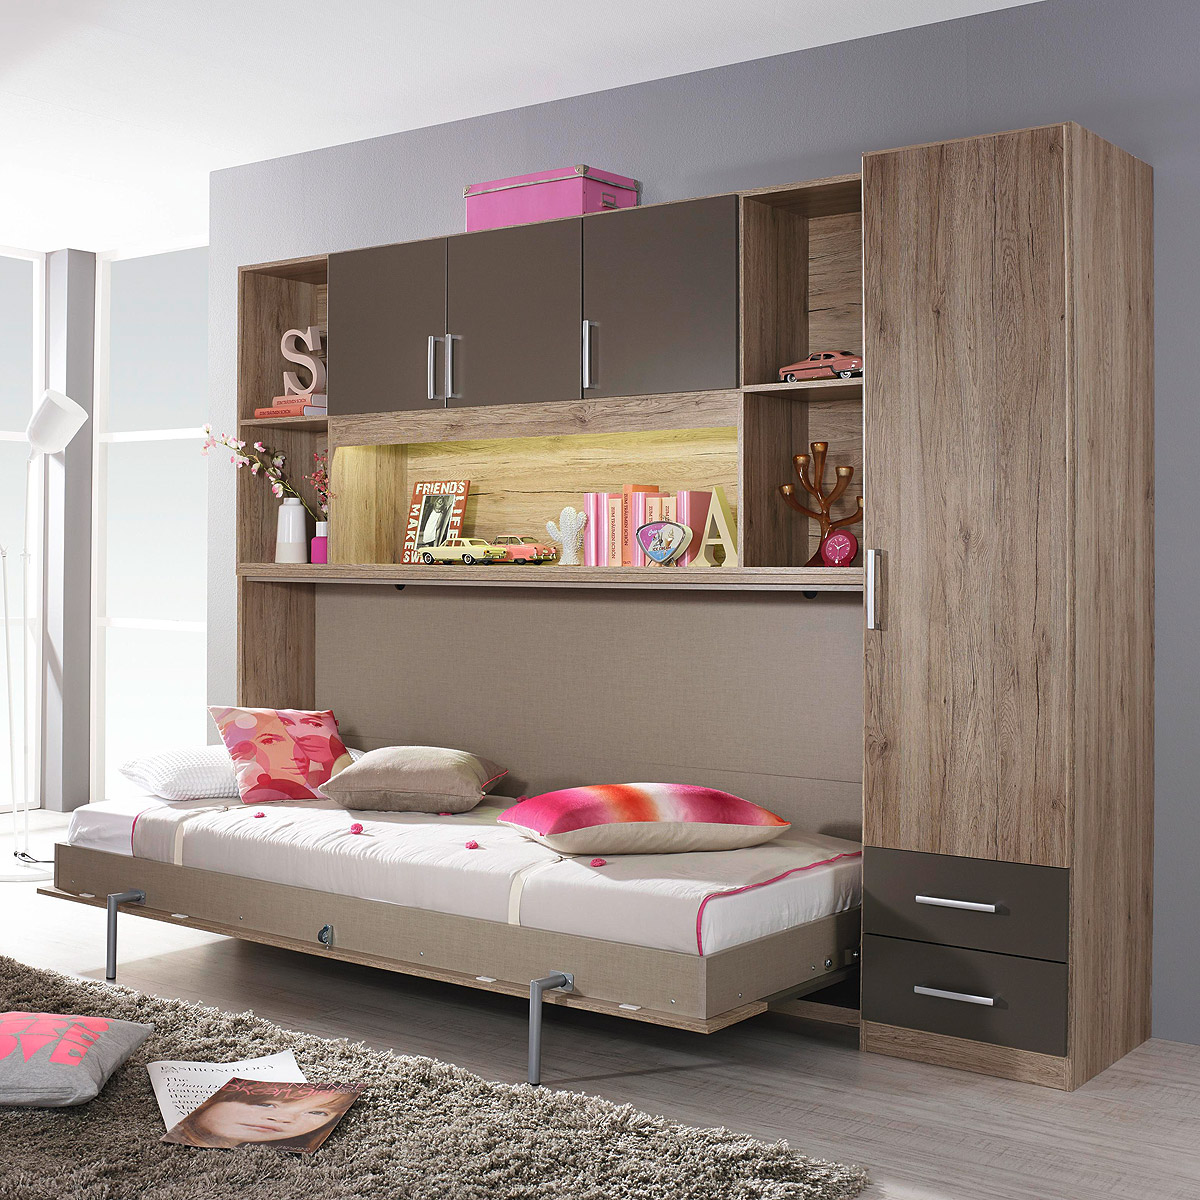 klappbett set albero bett regal kleiderschrank eiche sanremo lavagrau 90x200 cm eur 699 95. Black Bedroom Furniture Sets. Home Design Ideas